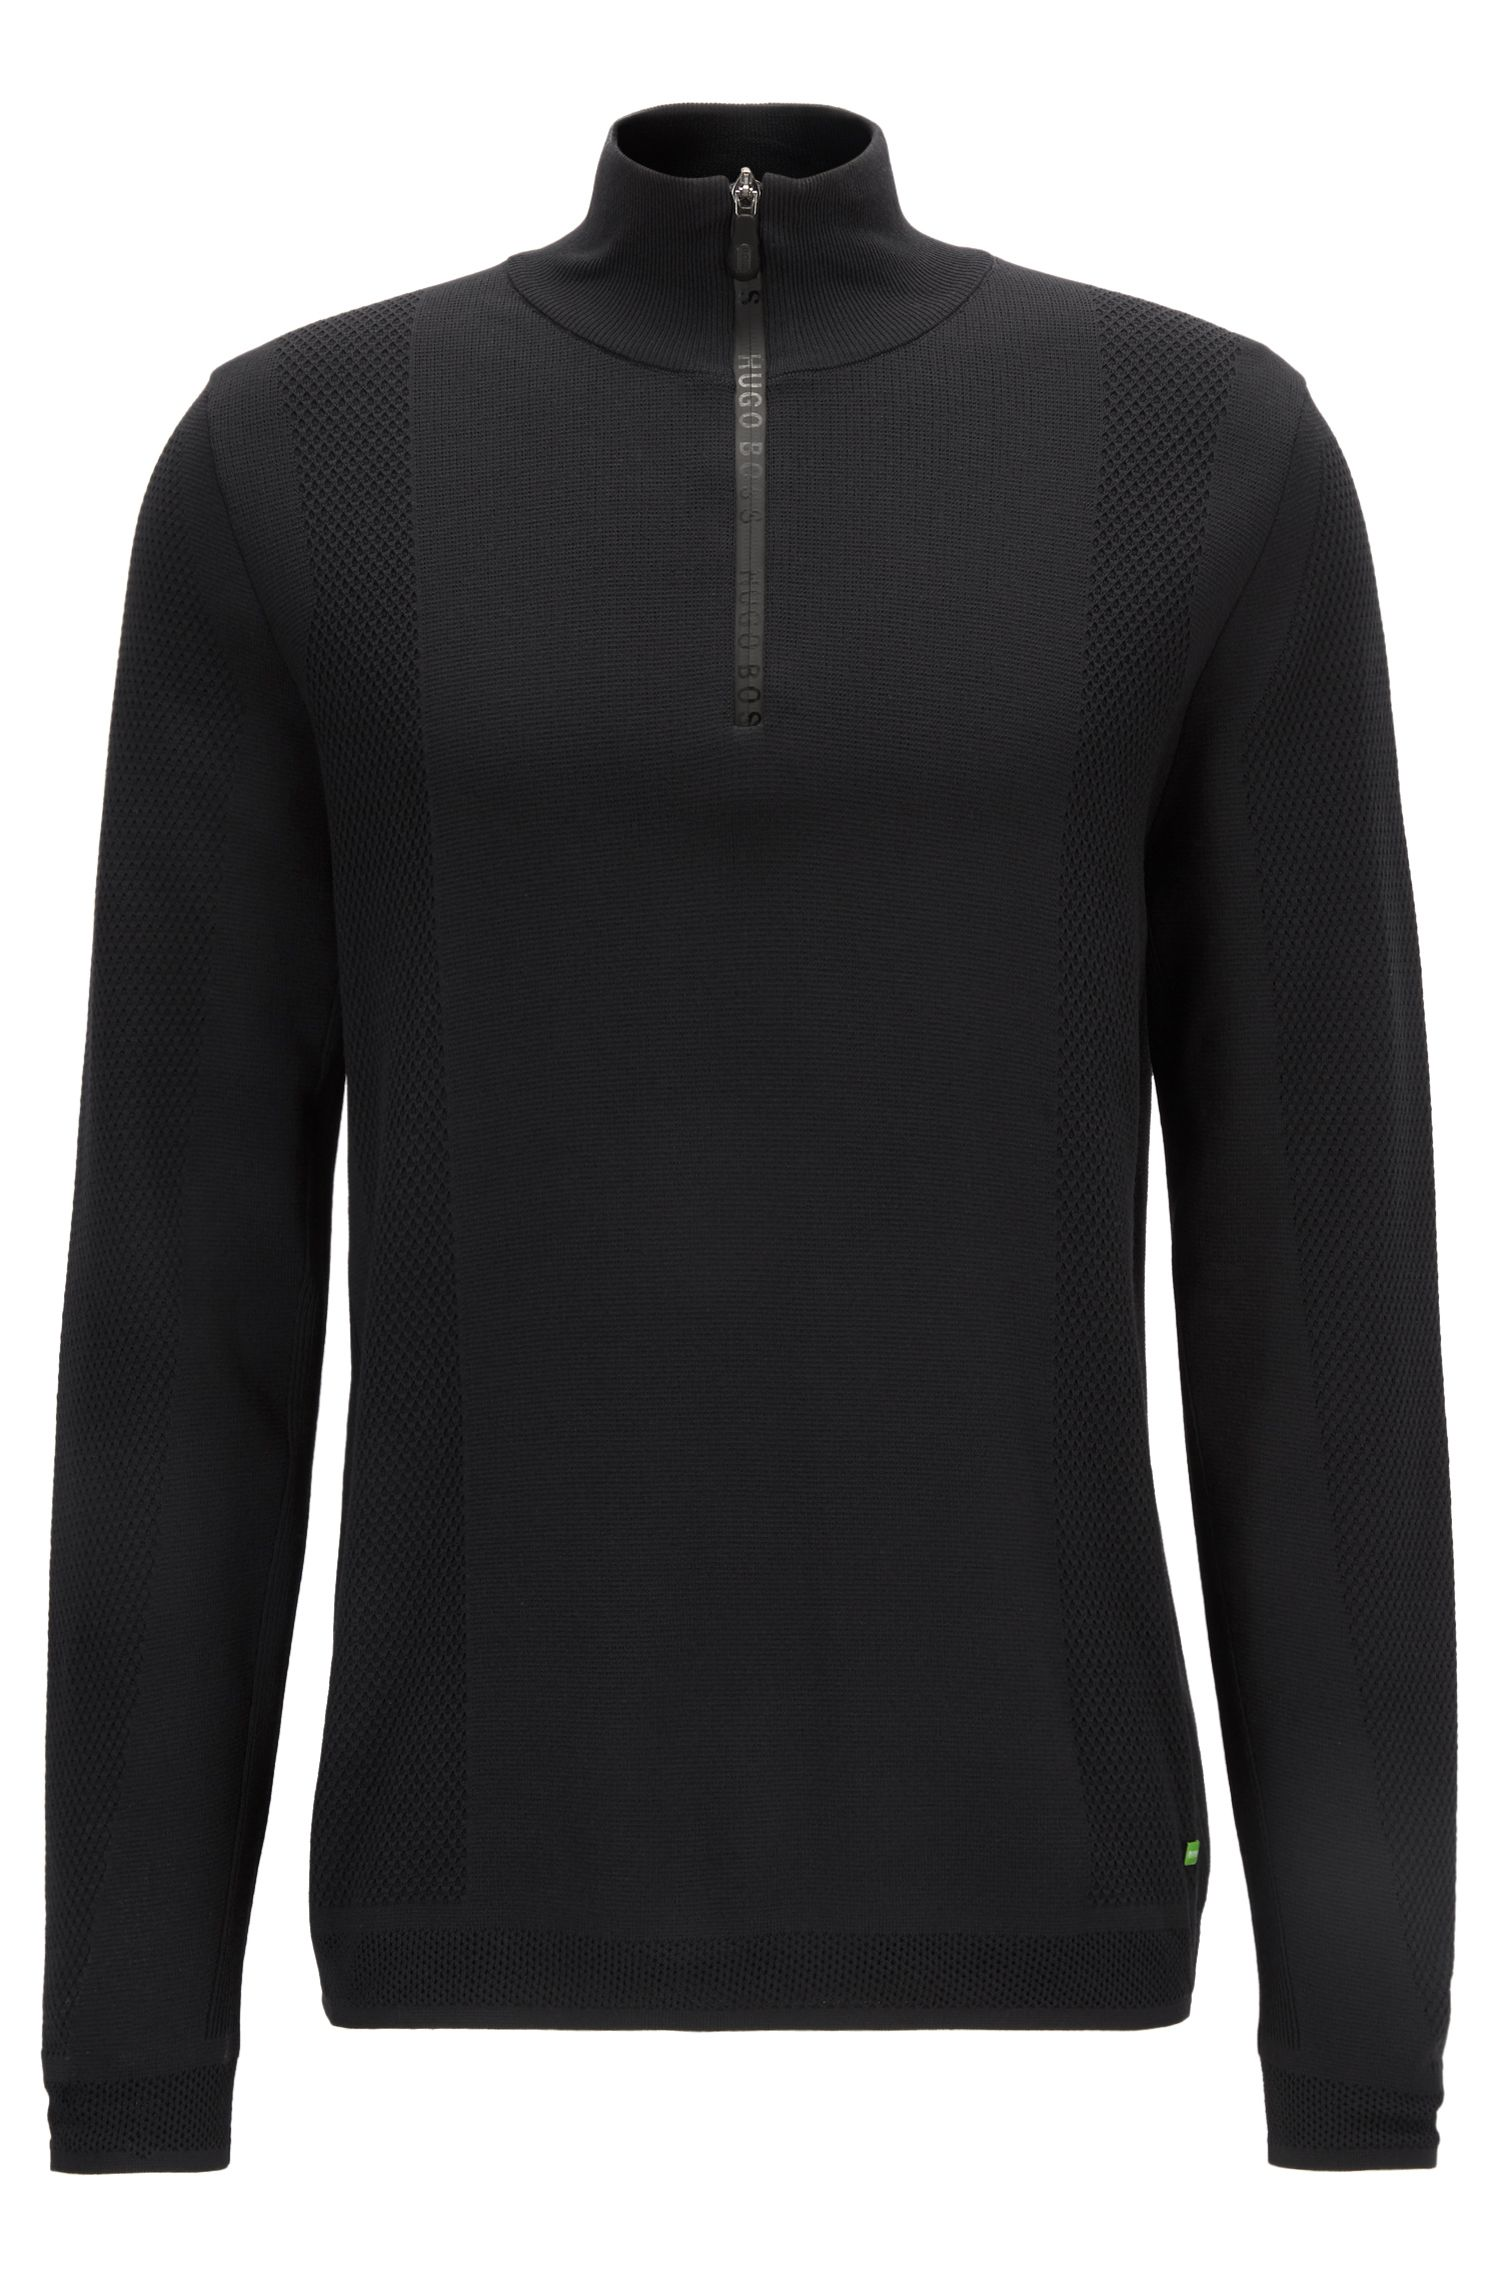 Zip-neck sweater in double-faced fabric